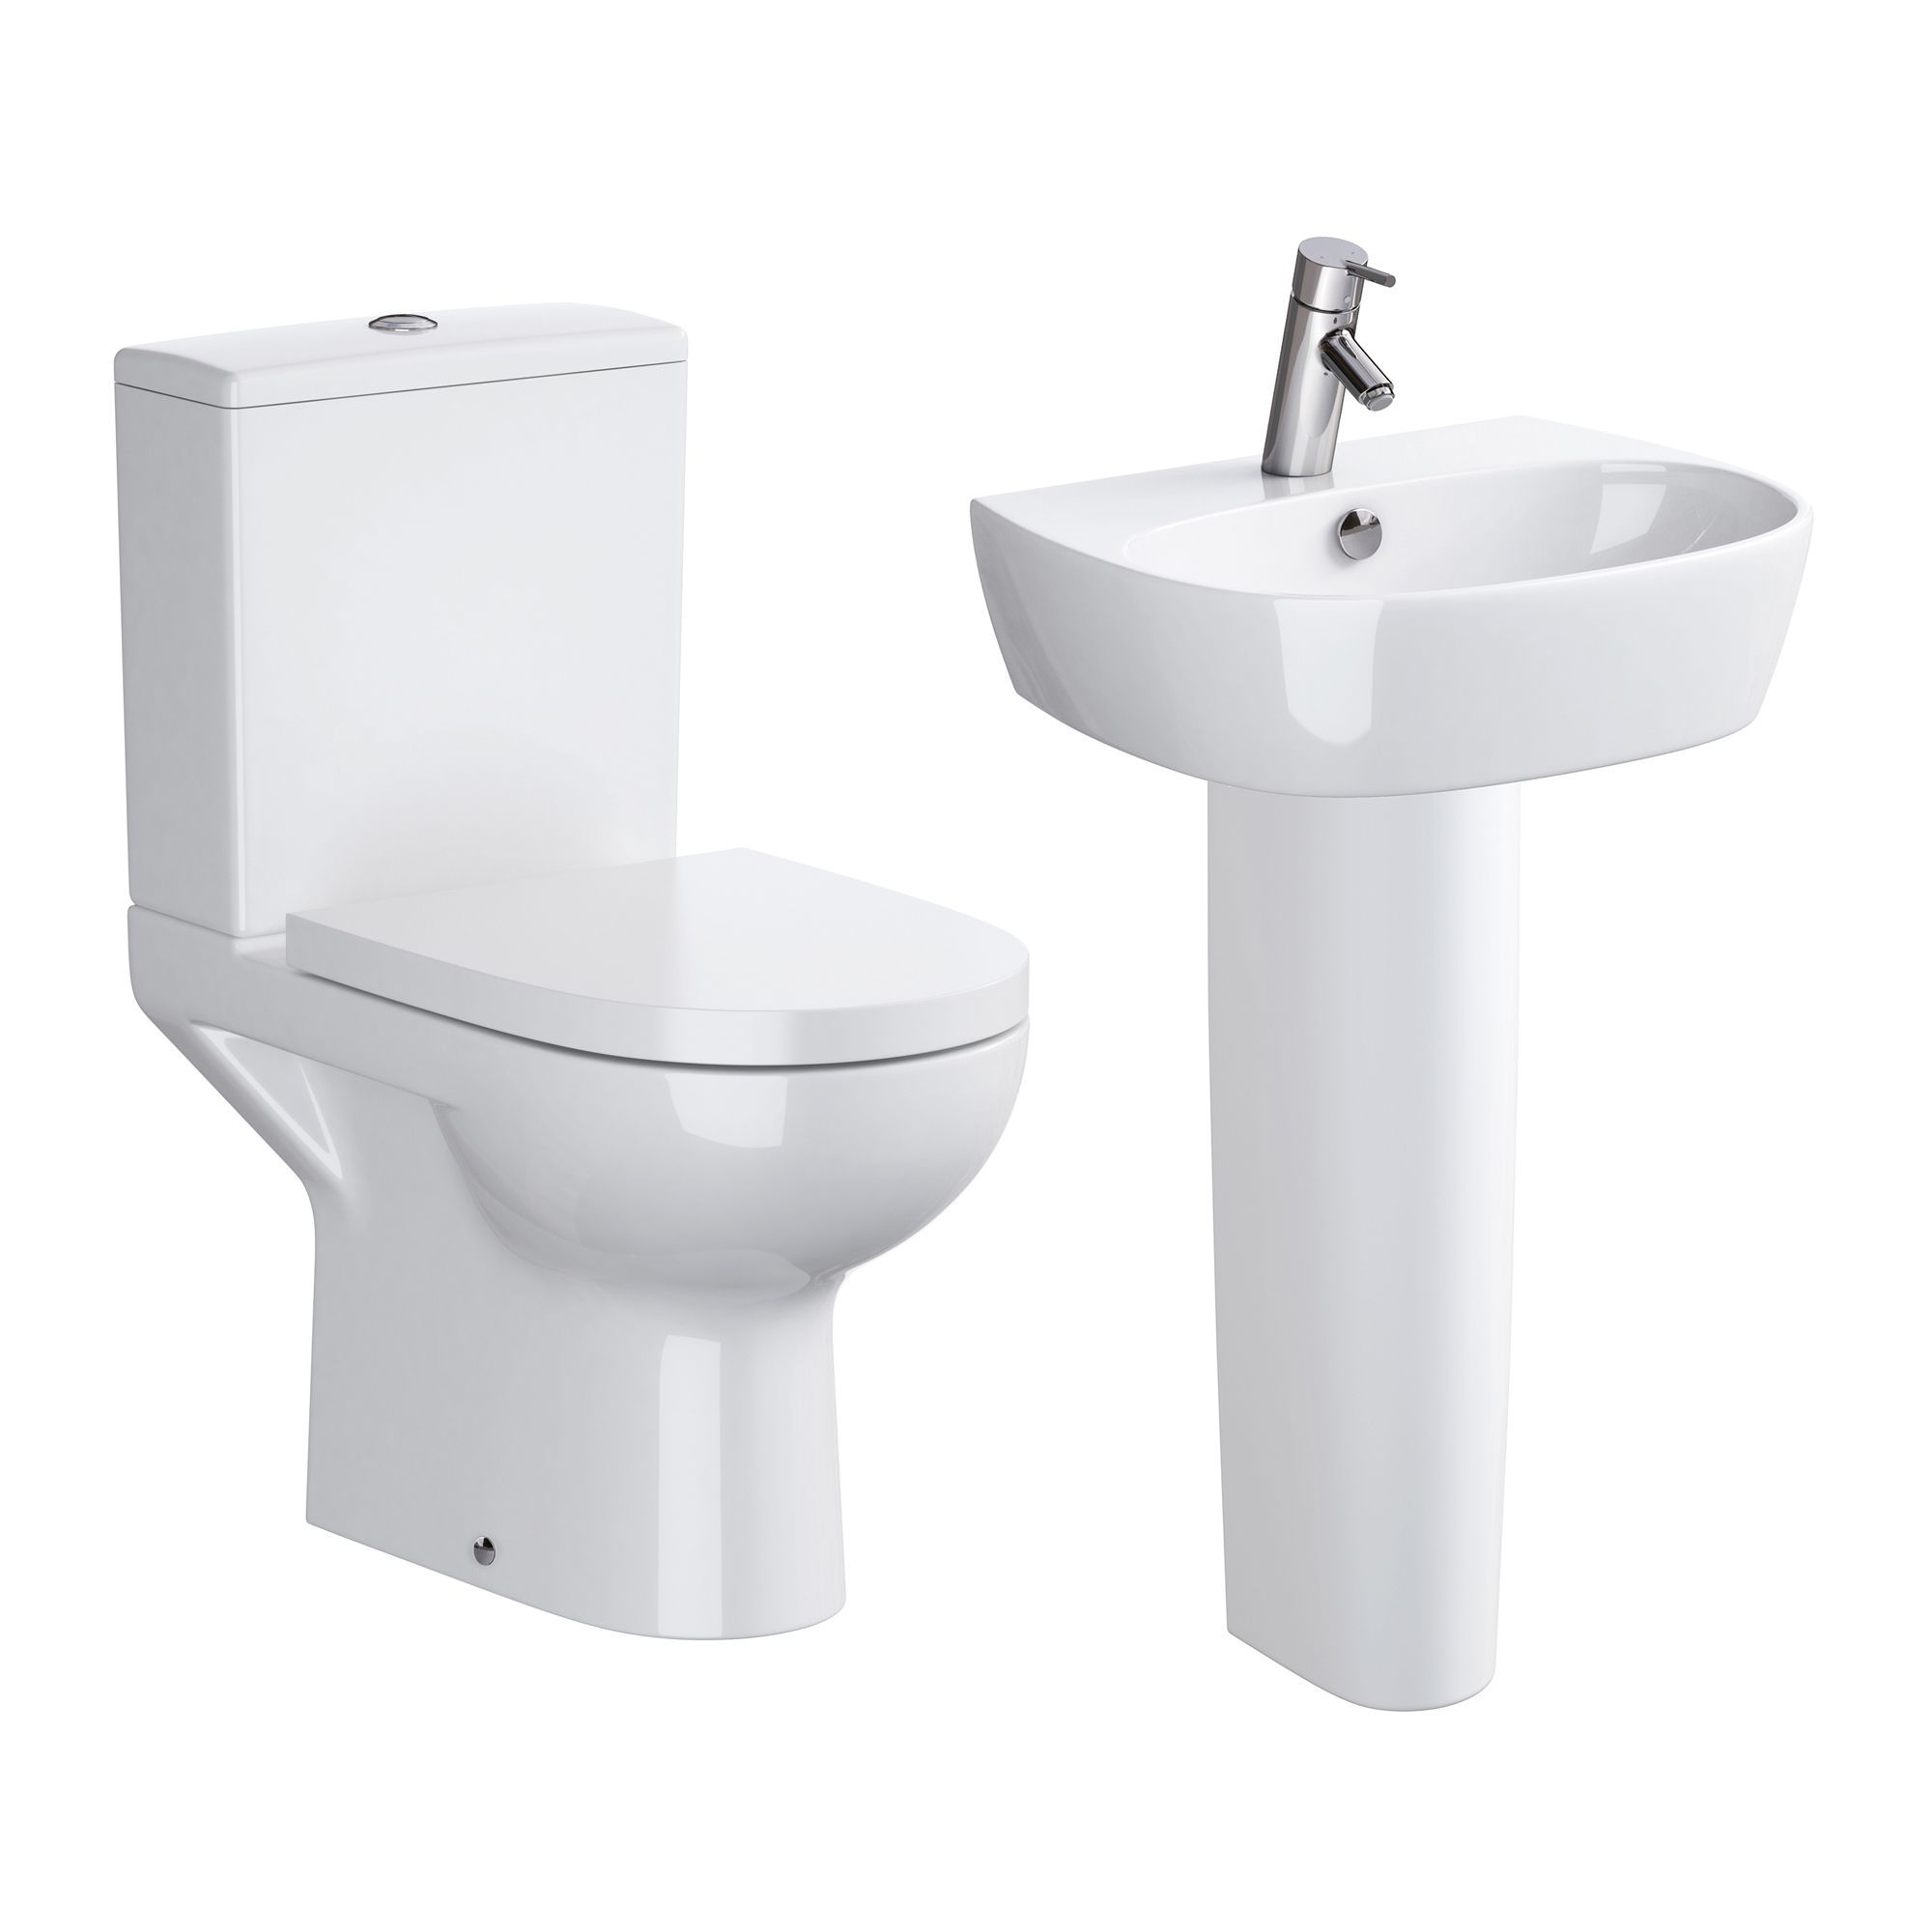 Cooke & Lewis San Remo Close-Coupled Toilet & Full Pedestal Basin ...